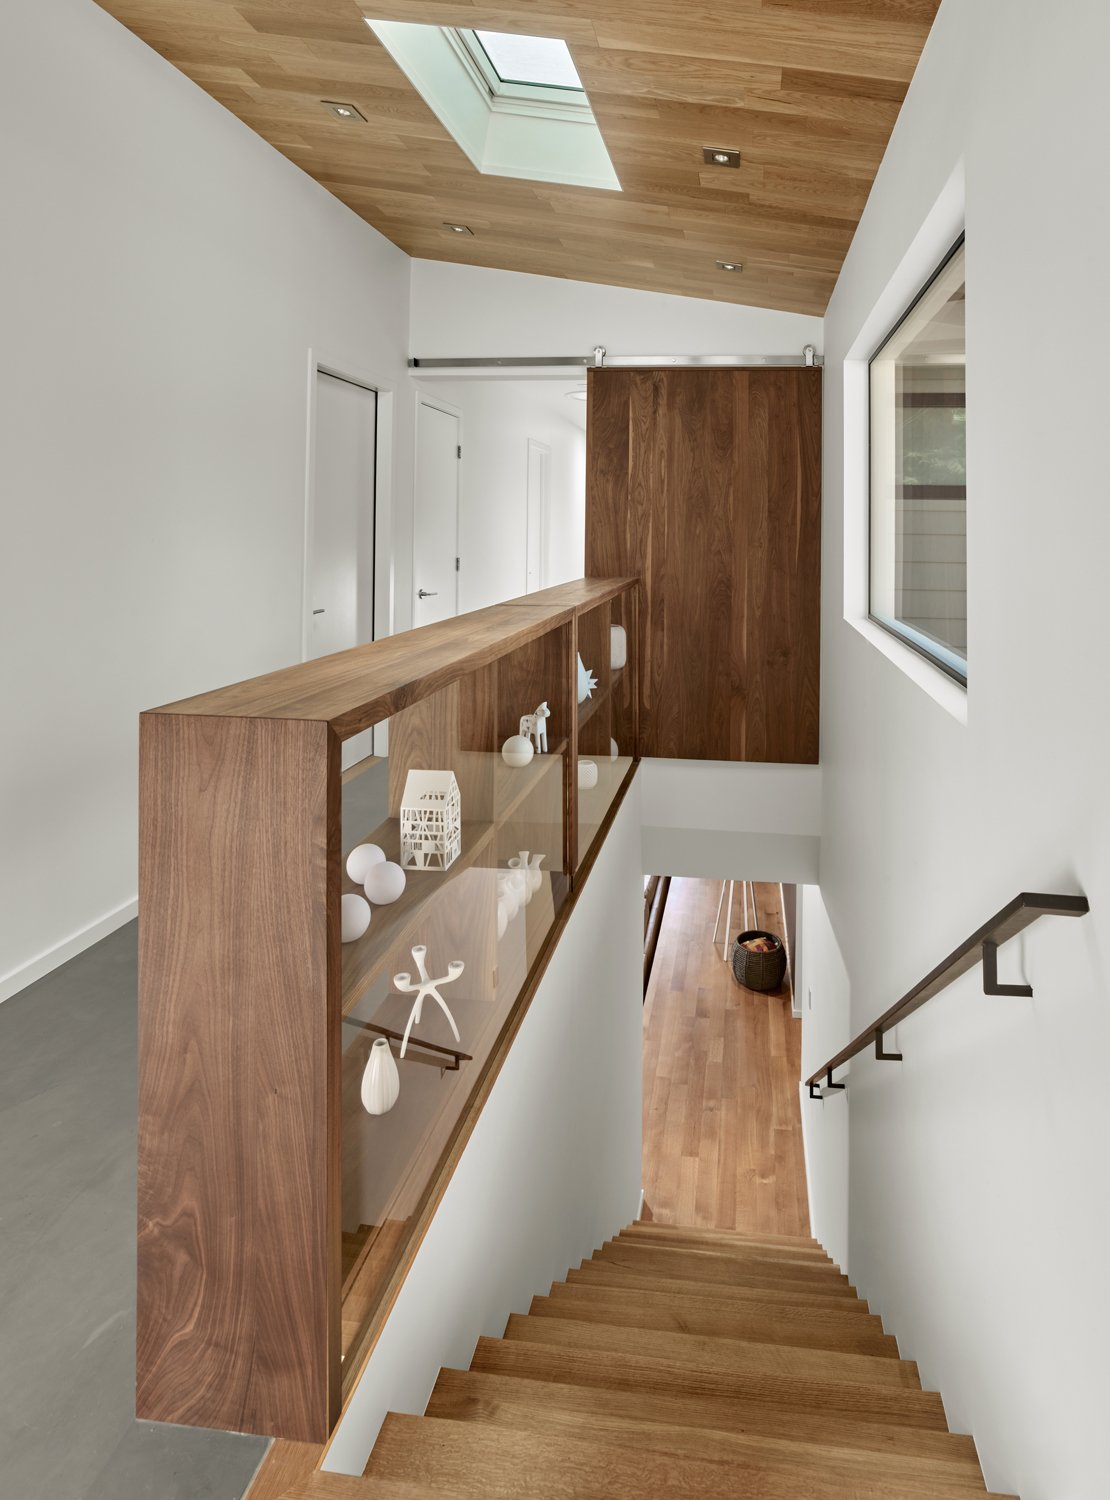 The sliding door and open shelves are by Matt Eastvold and are made of solid walnut. The ceiling features prefinished white oak and the floor is a thin cementitous product Ardex. this space serves as the main core of the home and connection between the living areas, entry, and bedroom areas. Trestle Glen Modern by Knock Architecture + Design